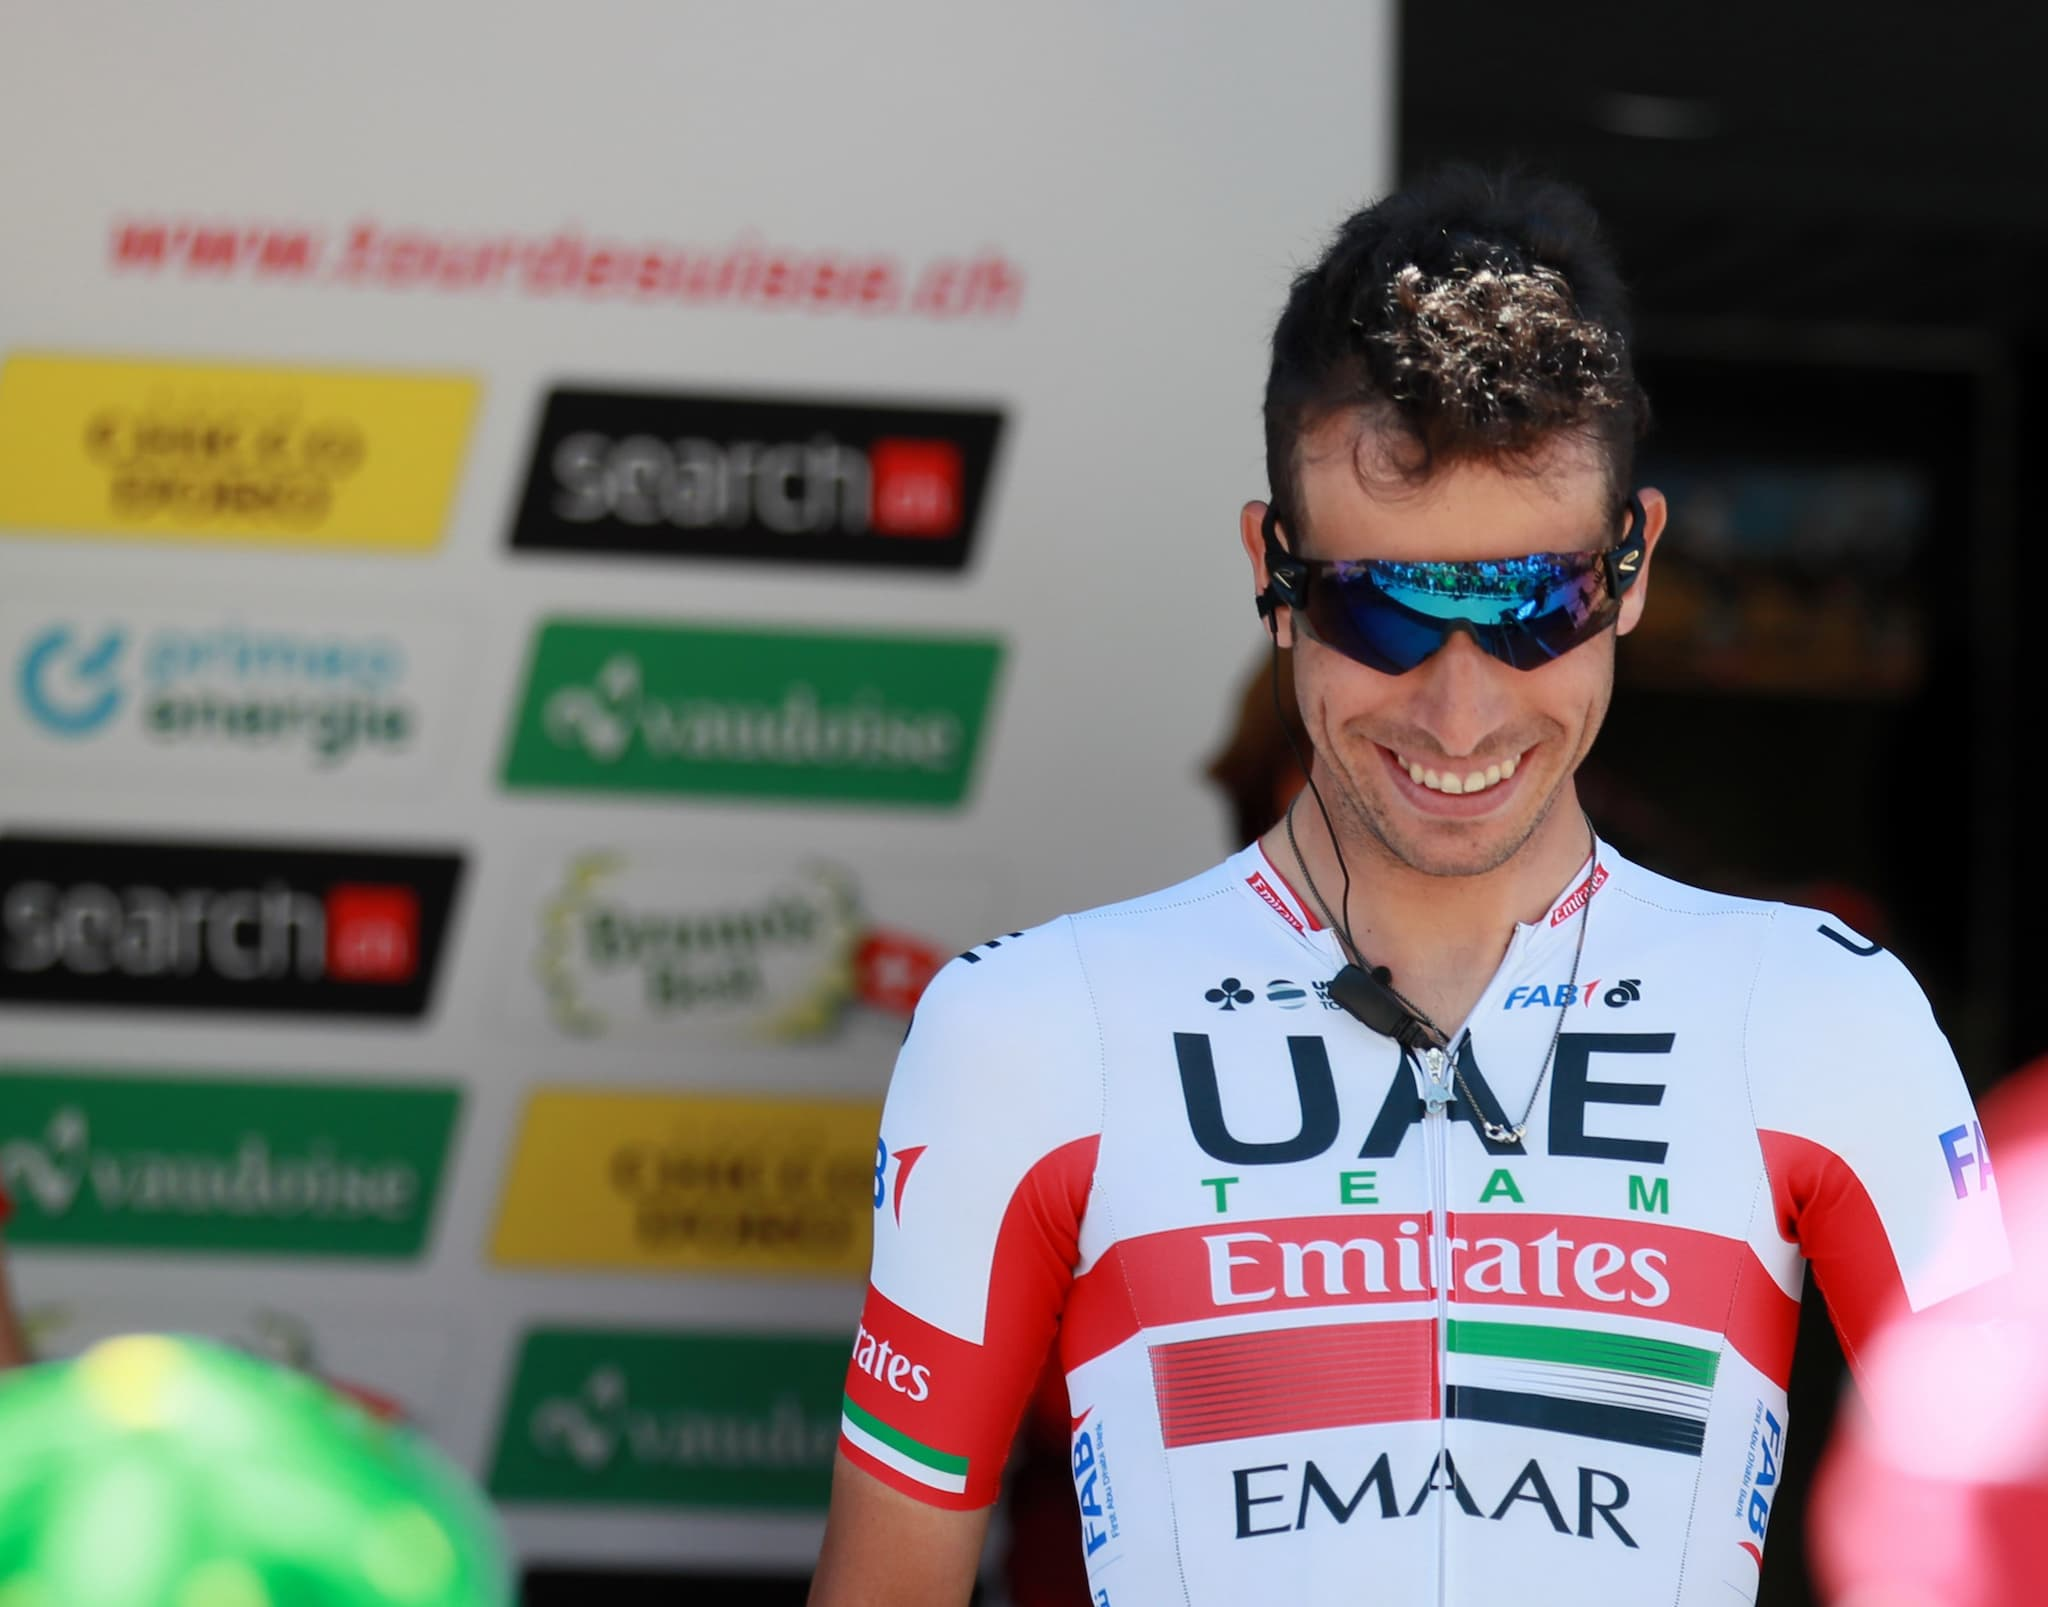 FABIO ARU SARA' AL VIA DEL TOUR DE FRANCE